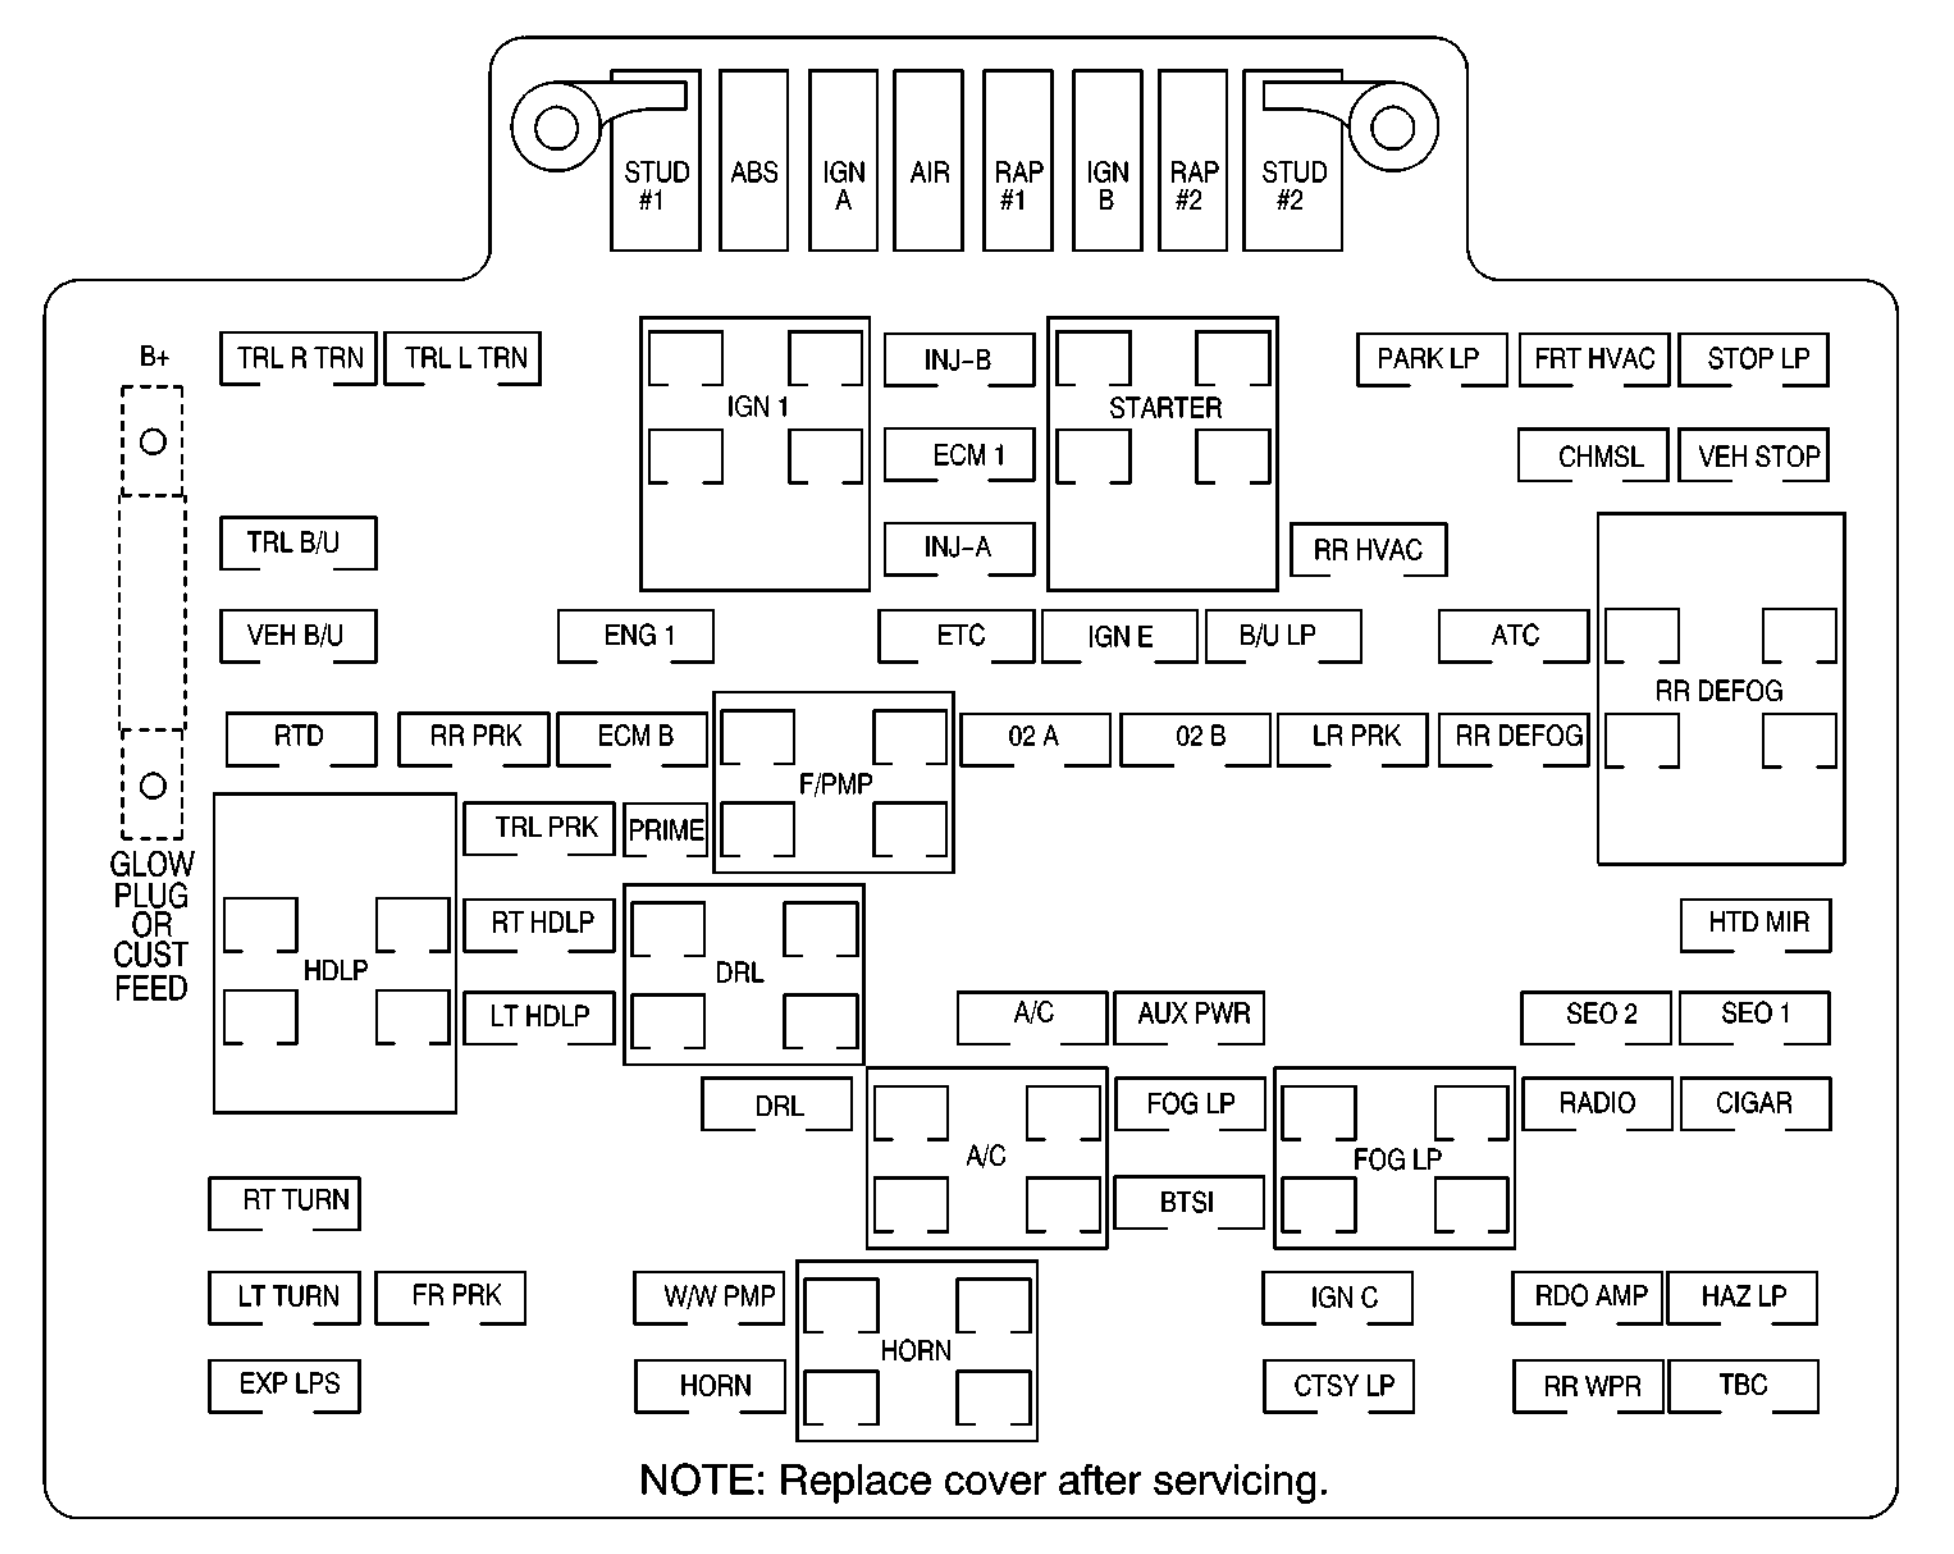 2005 tahoe fuse diagram wiring diagram will be a thing u2022 rh exploreandmore co uk 2005 chevy tahoe fuse box diagram 2007 Chevy Tahoe Fuse Box Diagram